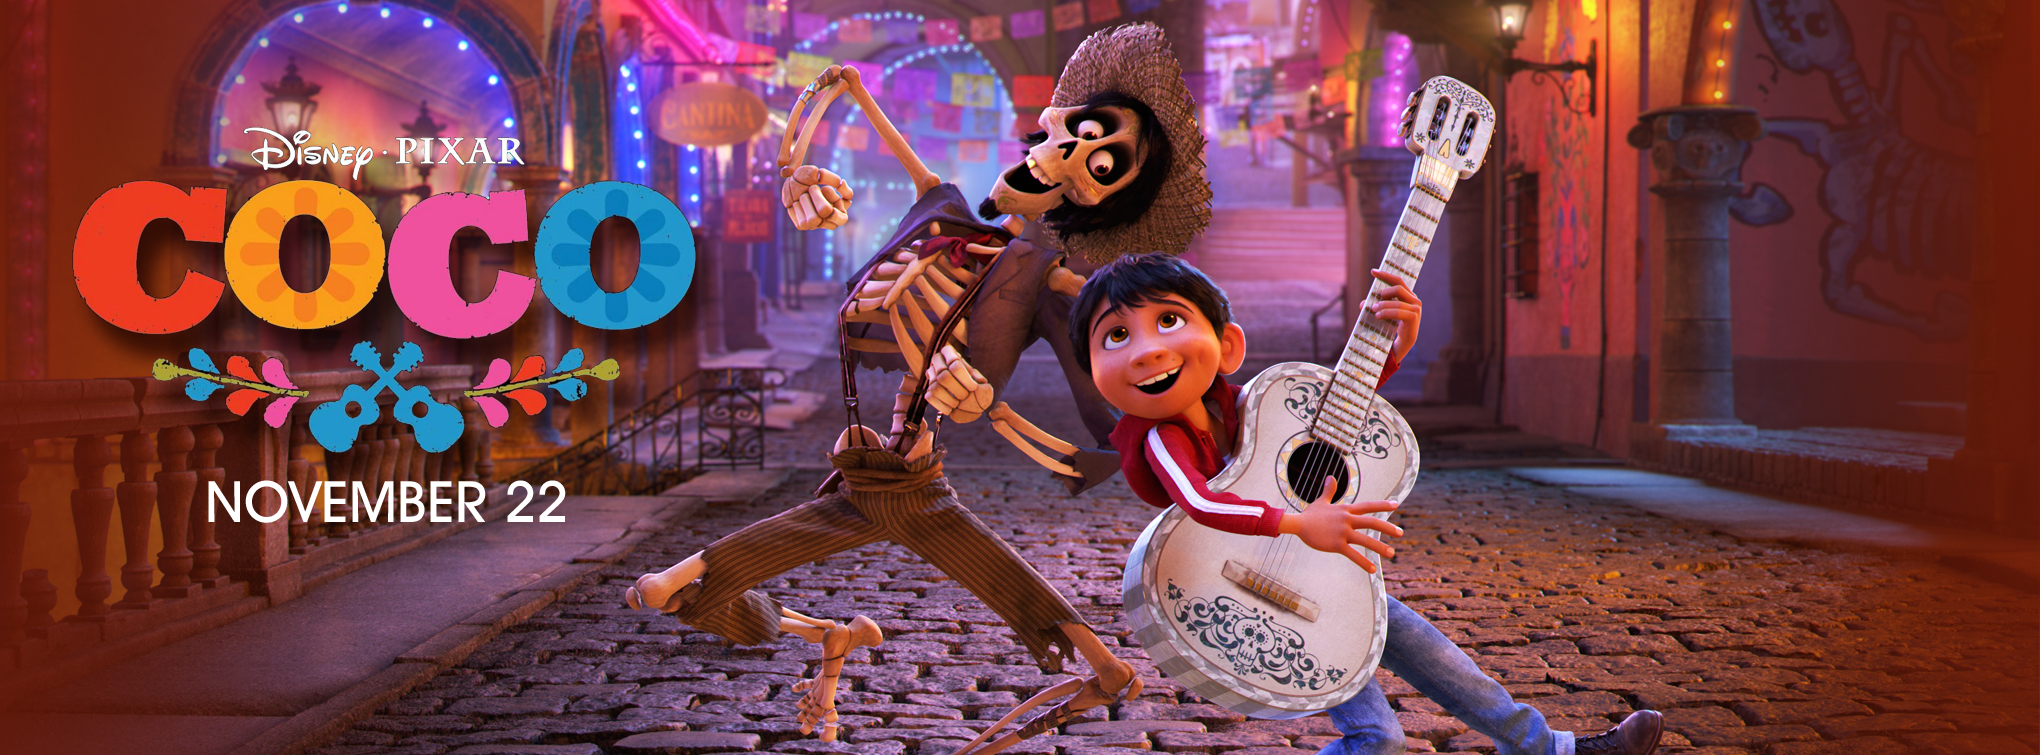 Slider image for Coco, featuring Olaf